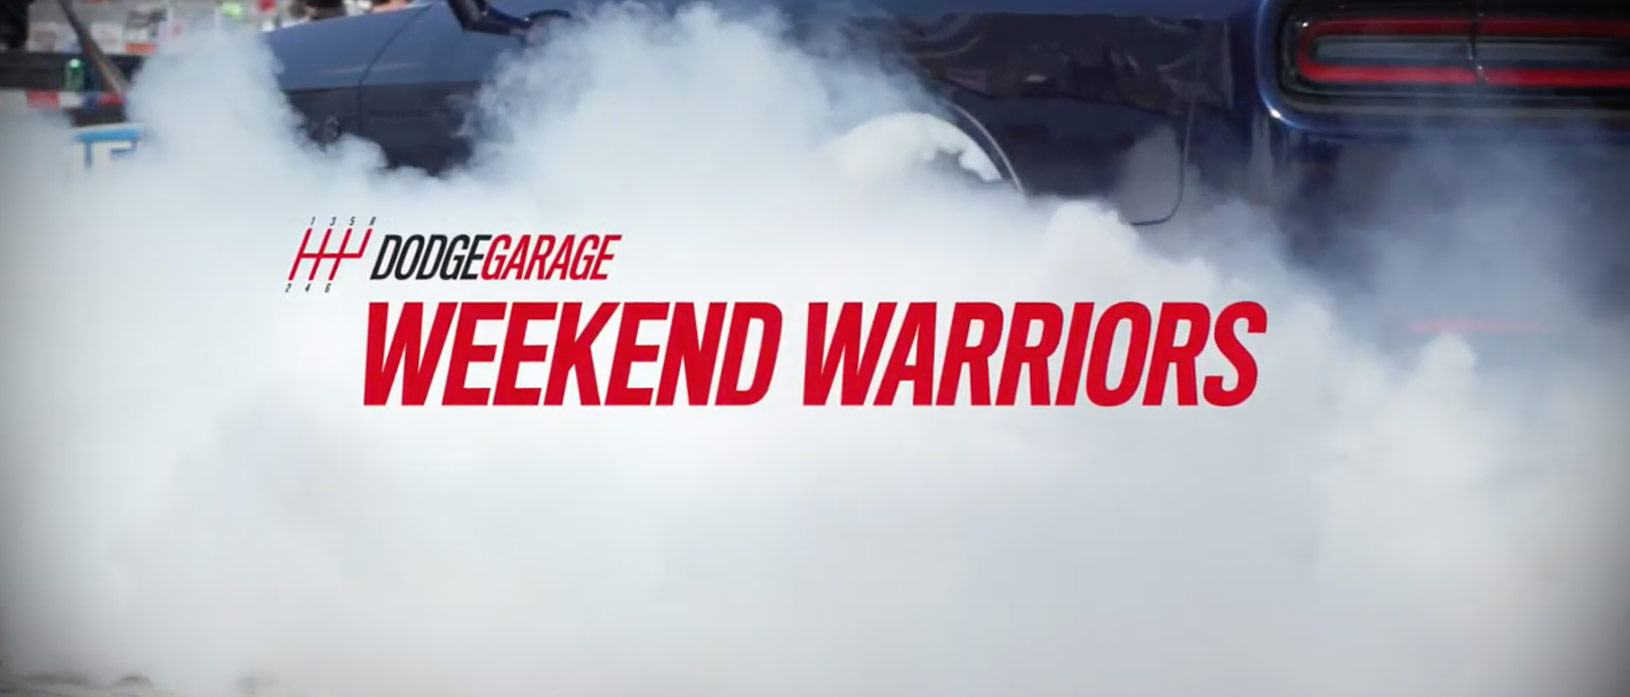 Weekend Warrior - Jeff